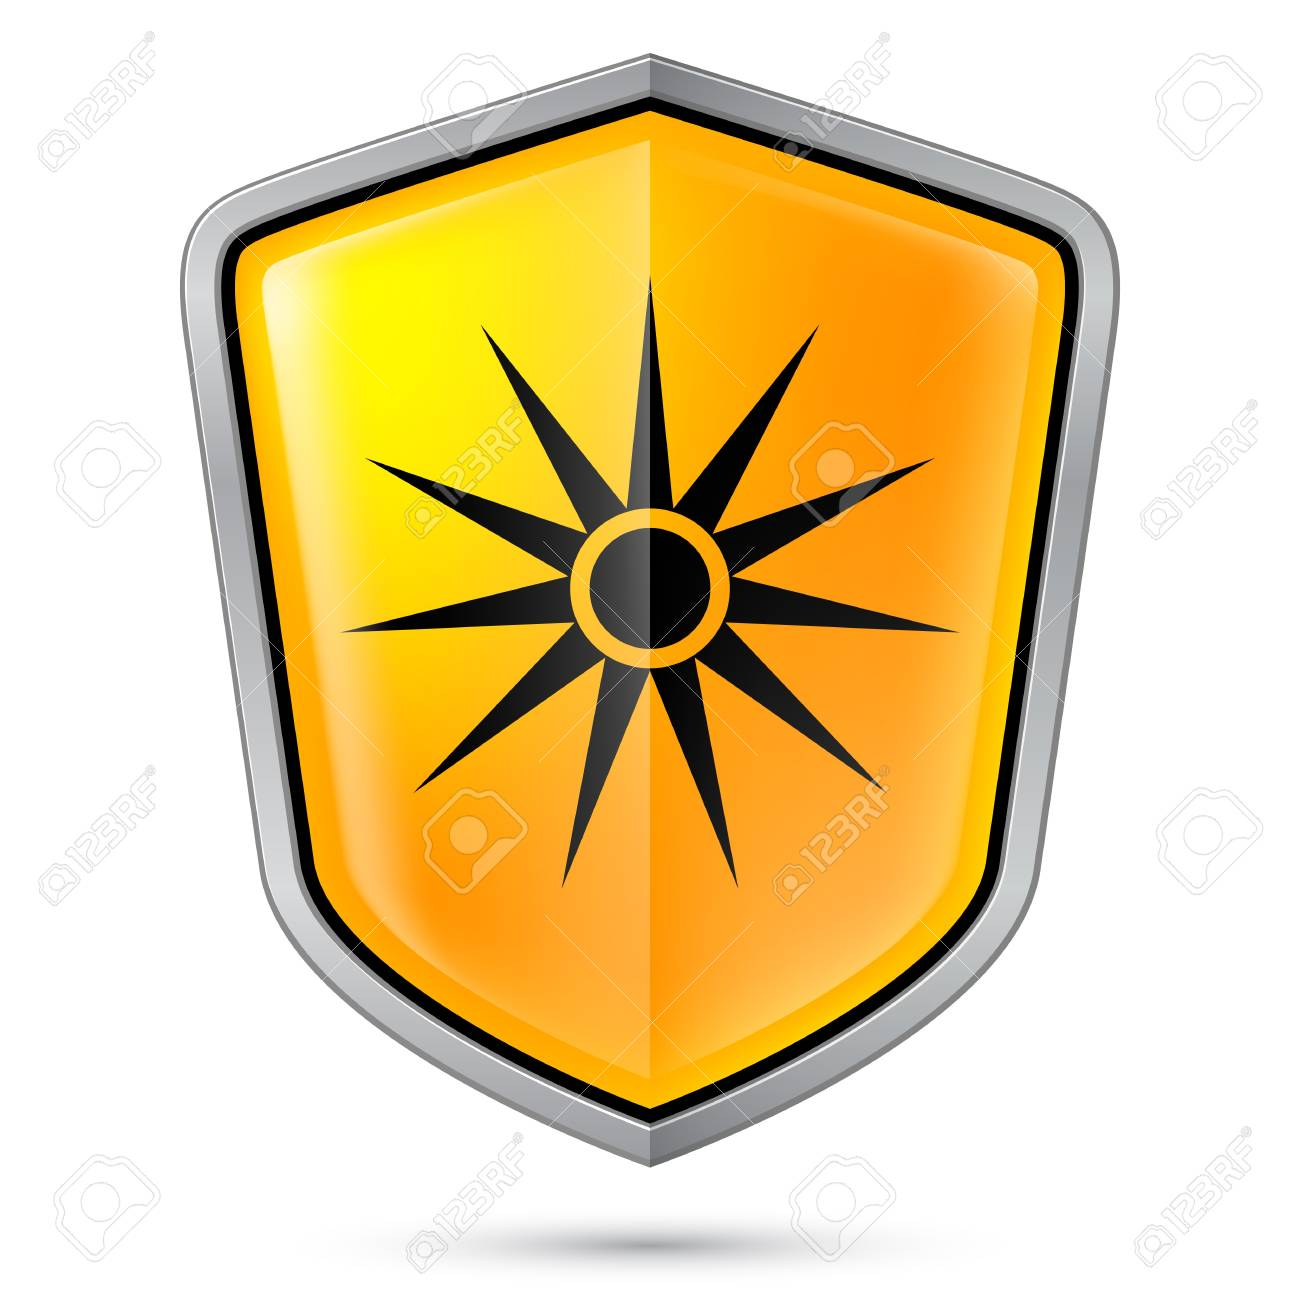 Warning sign on shield, indicating Warning of laser. Illustration on white Stock Vector - 21072138